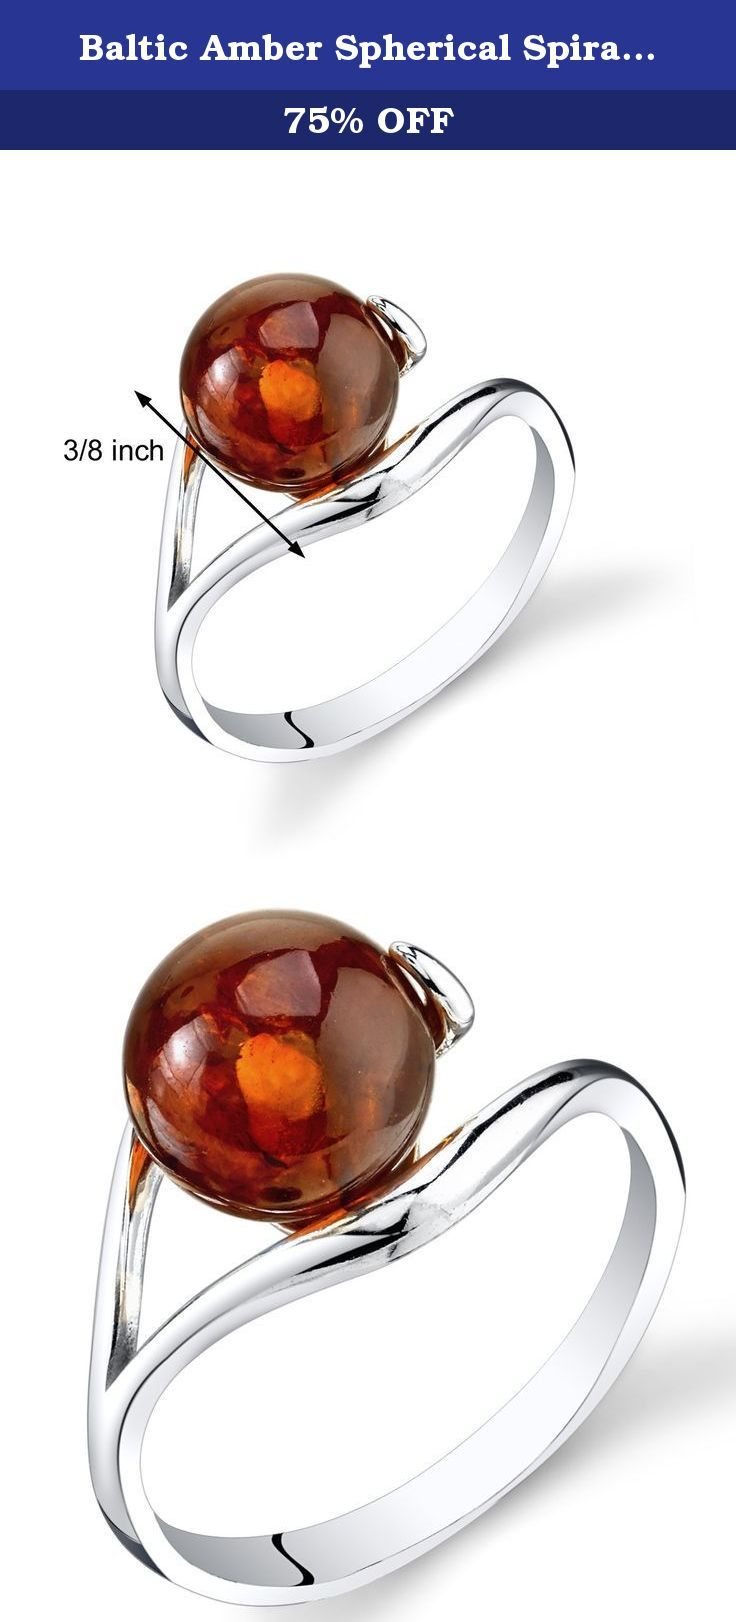 Baltic Amber Spherical Spiral Ring Sterling Silver Cognac Color Size 6. Genuine Baltic Amber, Rich Cognac Color, round sphere shape. Ring: 1.4 grams pure 925 sterling silver, Available in sizes 5 to 9. Ring features exceptional design, craftsmanship and finishing. Perfect gift for Mothers Day, Birthdays, Valentines Day, Graduation, Christmas or just about any other occasion. Money Back Guarantee. Includes a Signature Gift Box. Style SR11322.